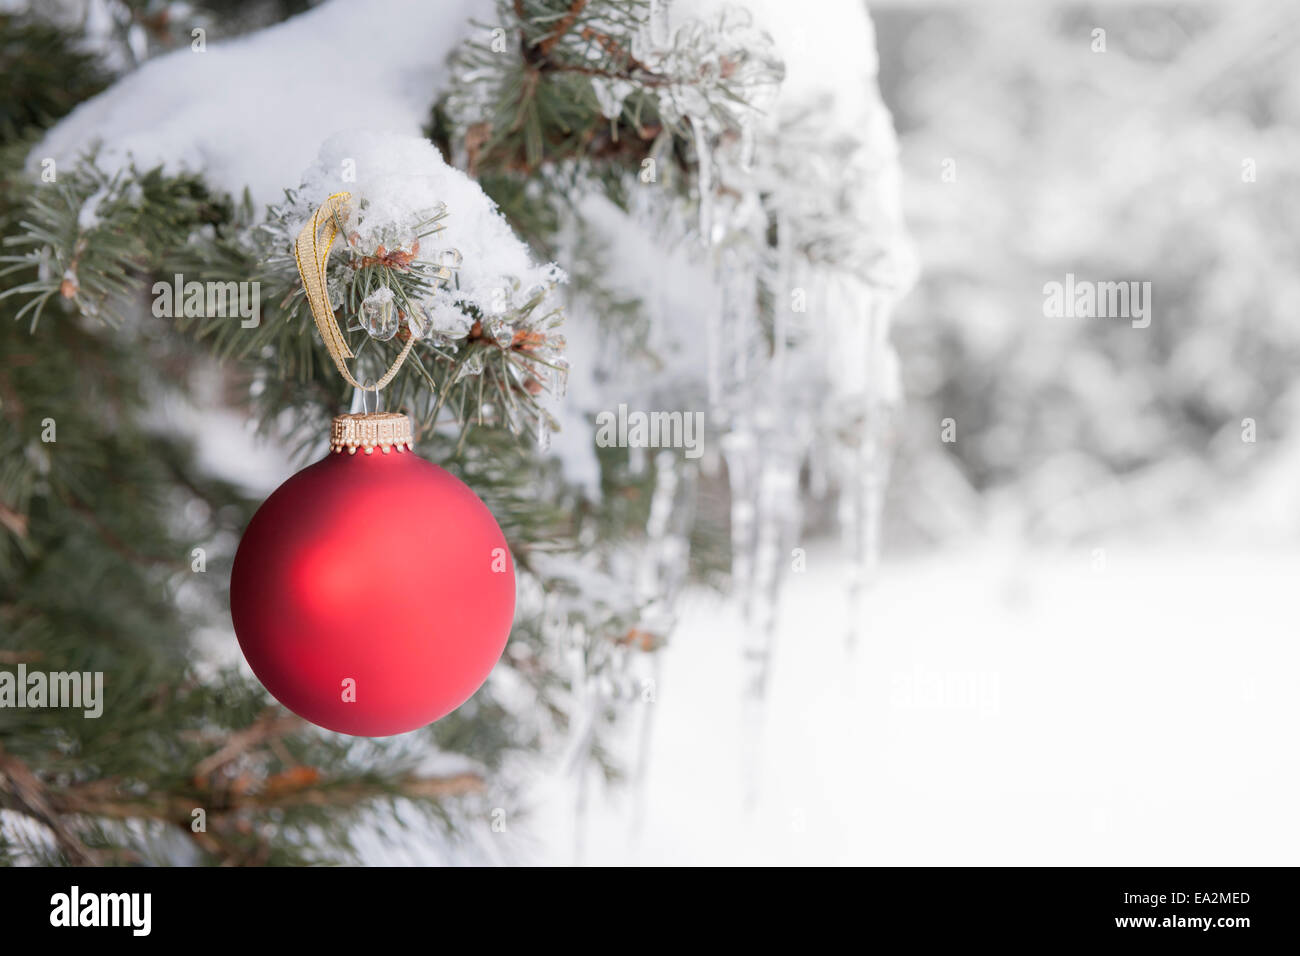 Red Christmas Ornament Hanging On Snow Covered Spruce Tree